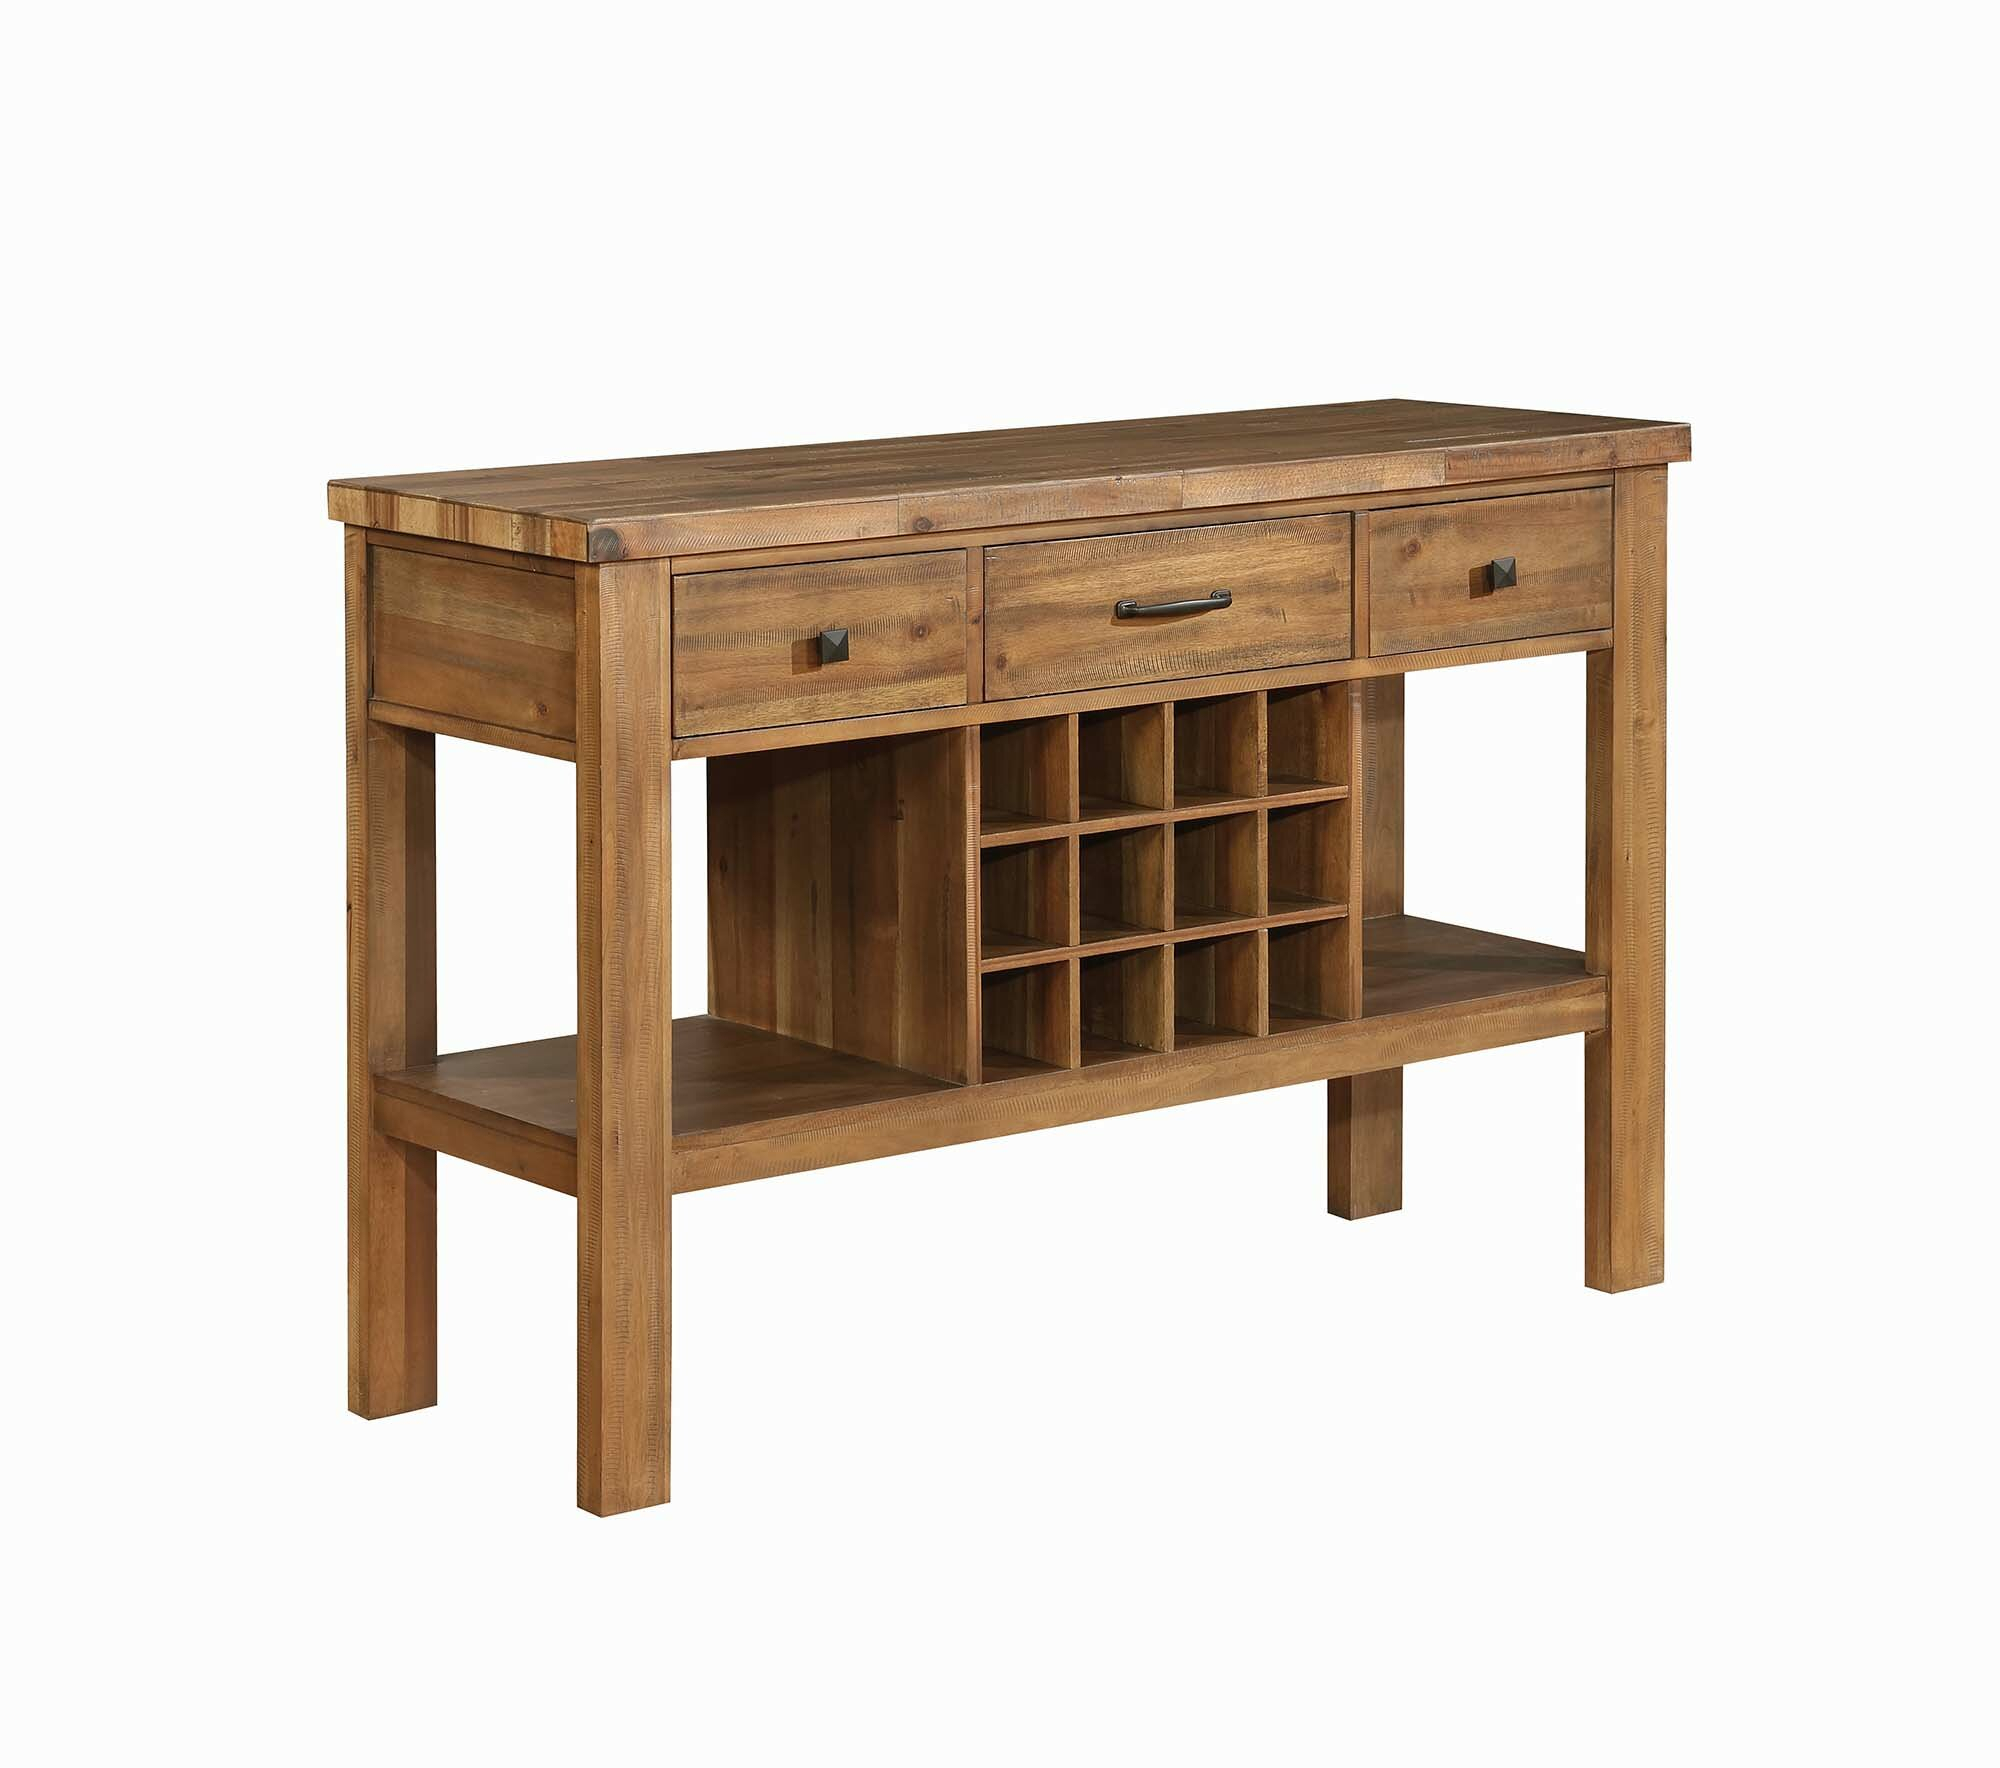 Bolick 3 Drawer Buffet Table intended for Baleine 3 Drawer Sideboards (Image 11 of 30)